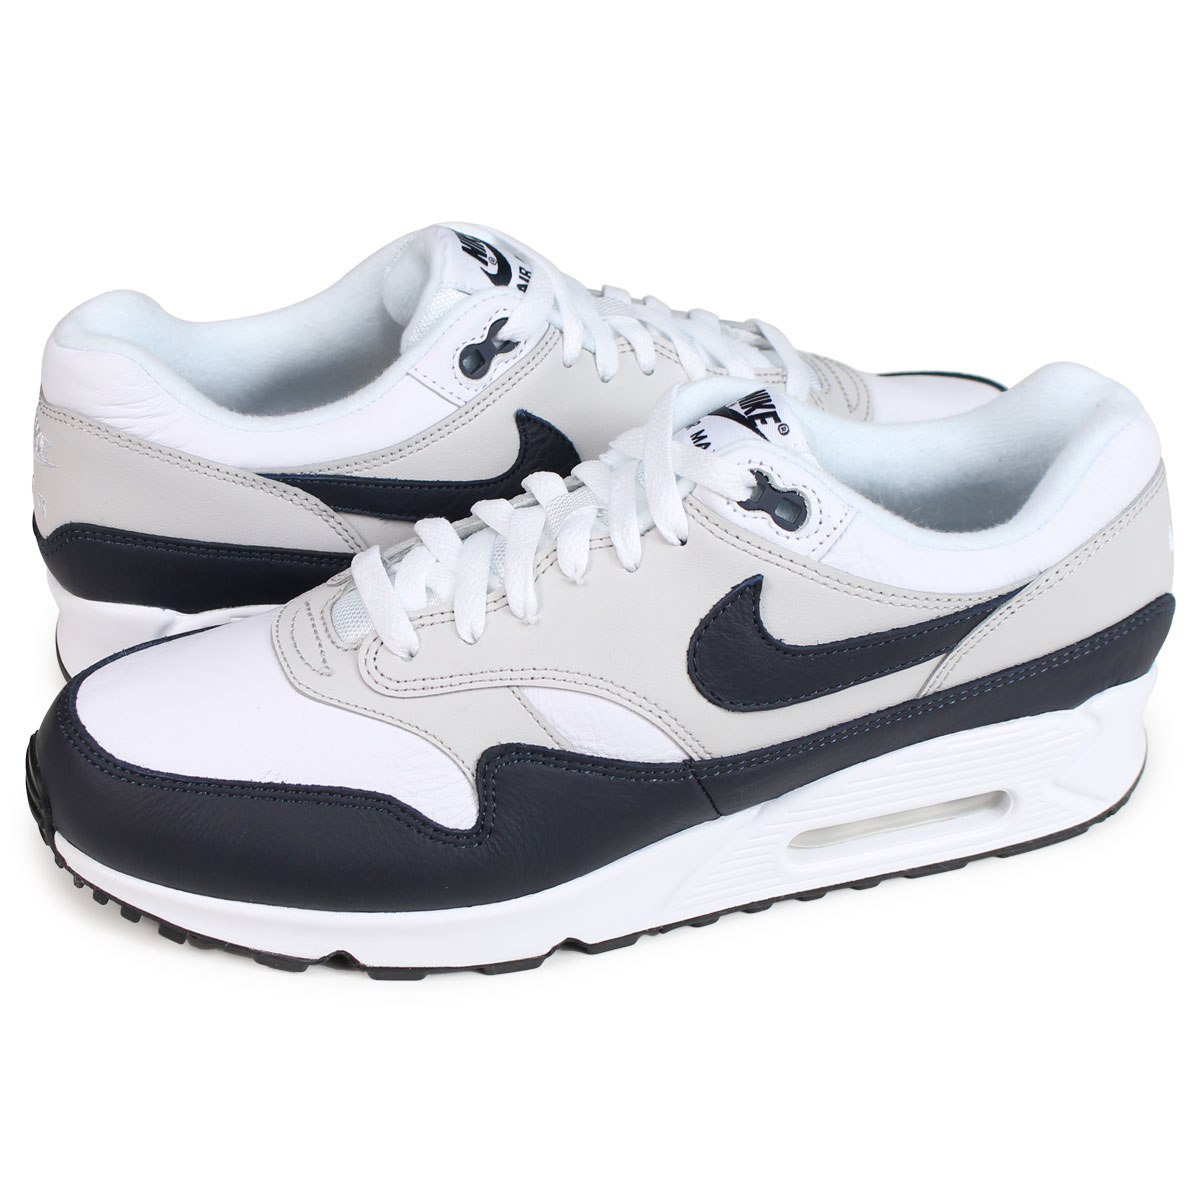 outlet store a0144 f7d2a  brand NIKE getting high popularity from sneakers freak . The model who put AIR  MAX 90 and 1 ...